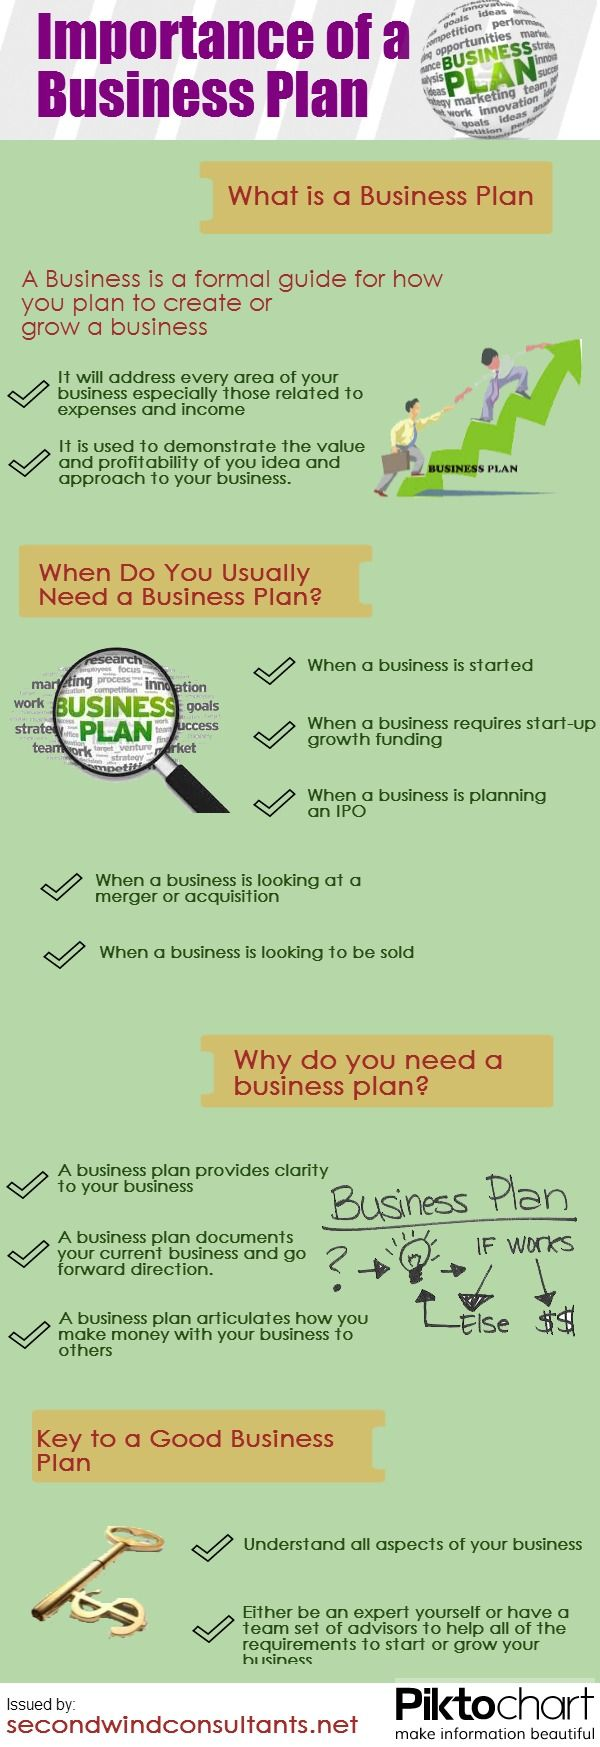 Business plan for small business